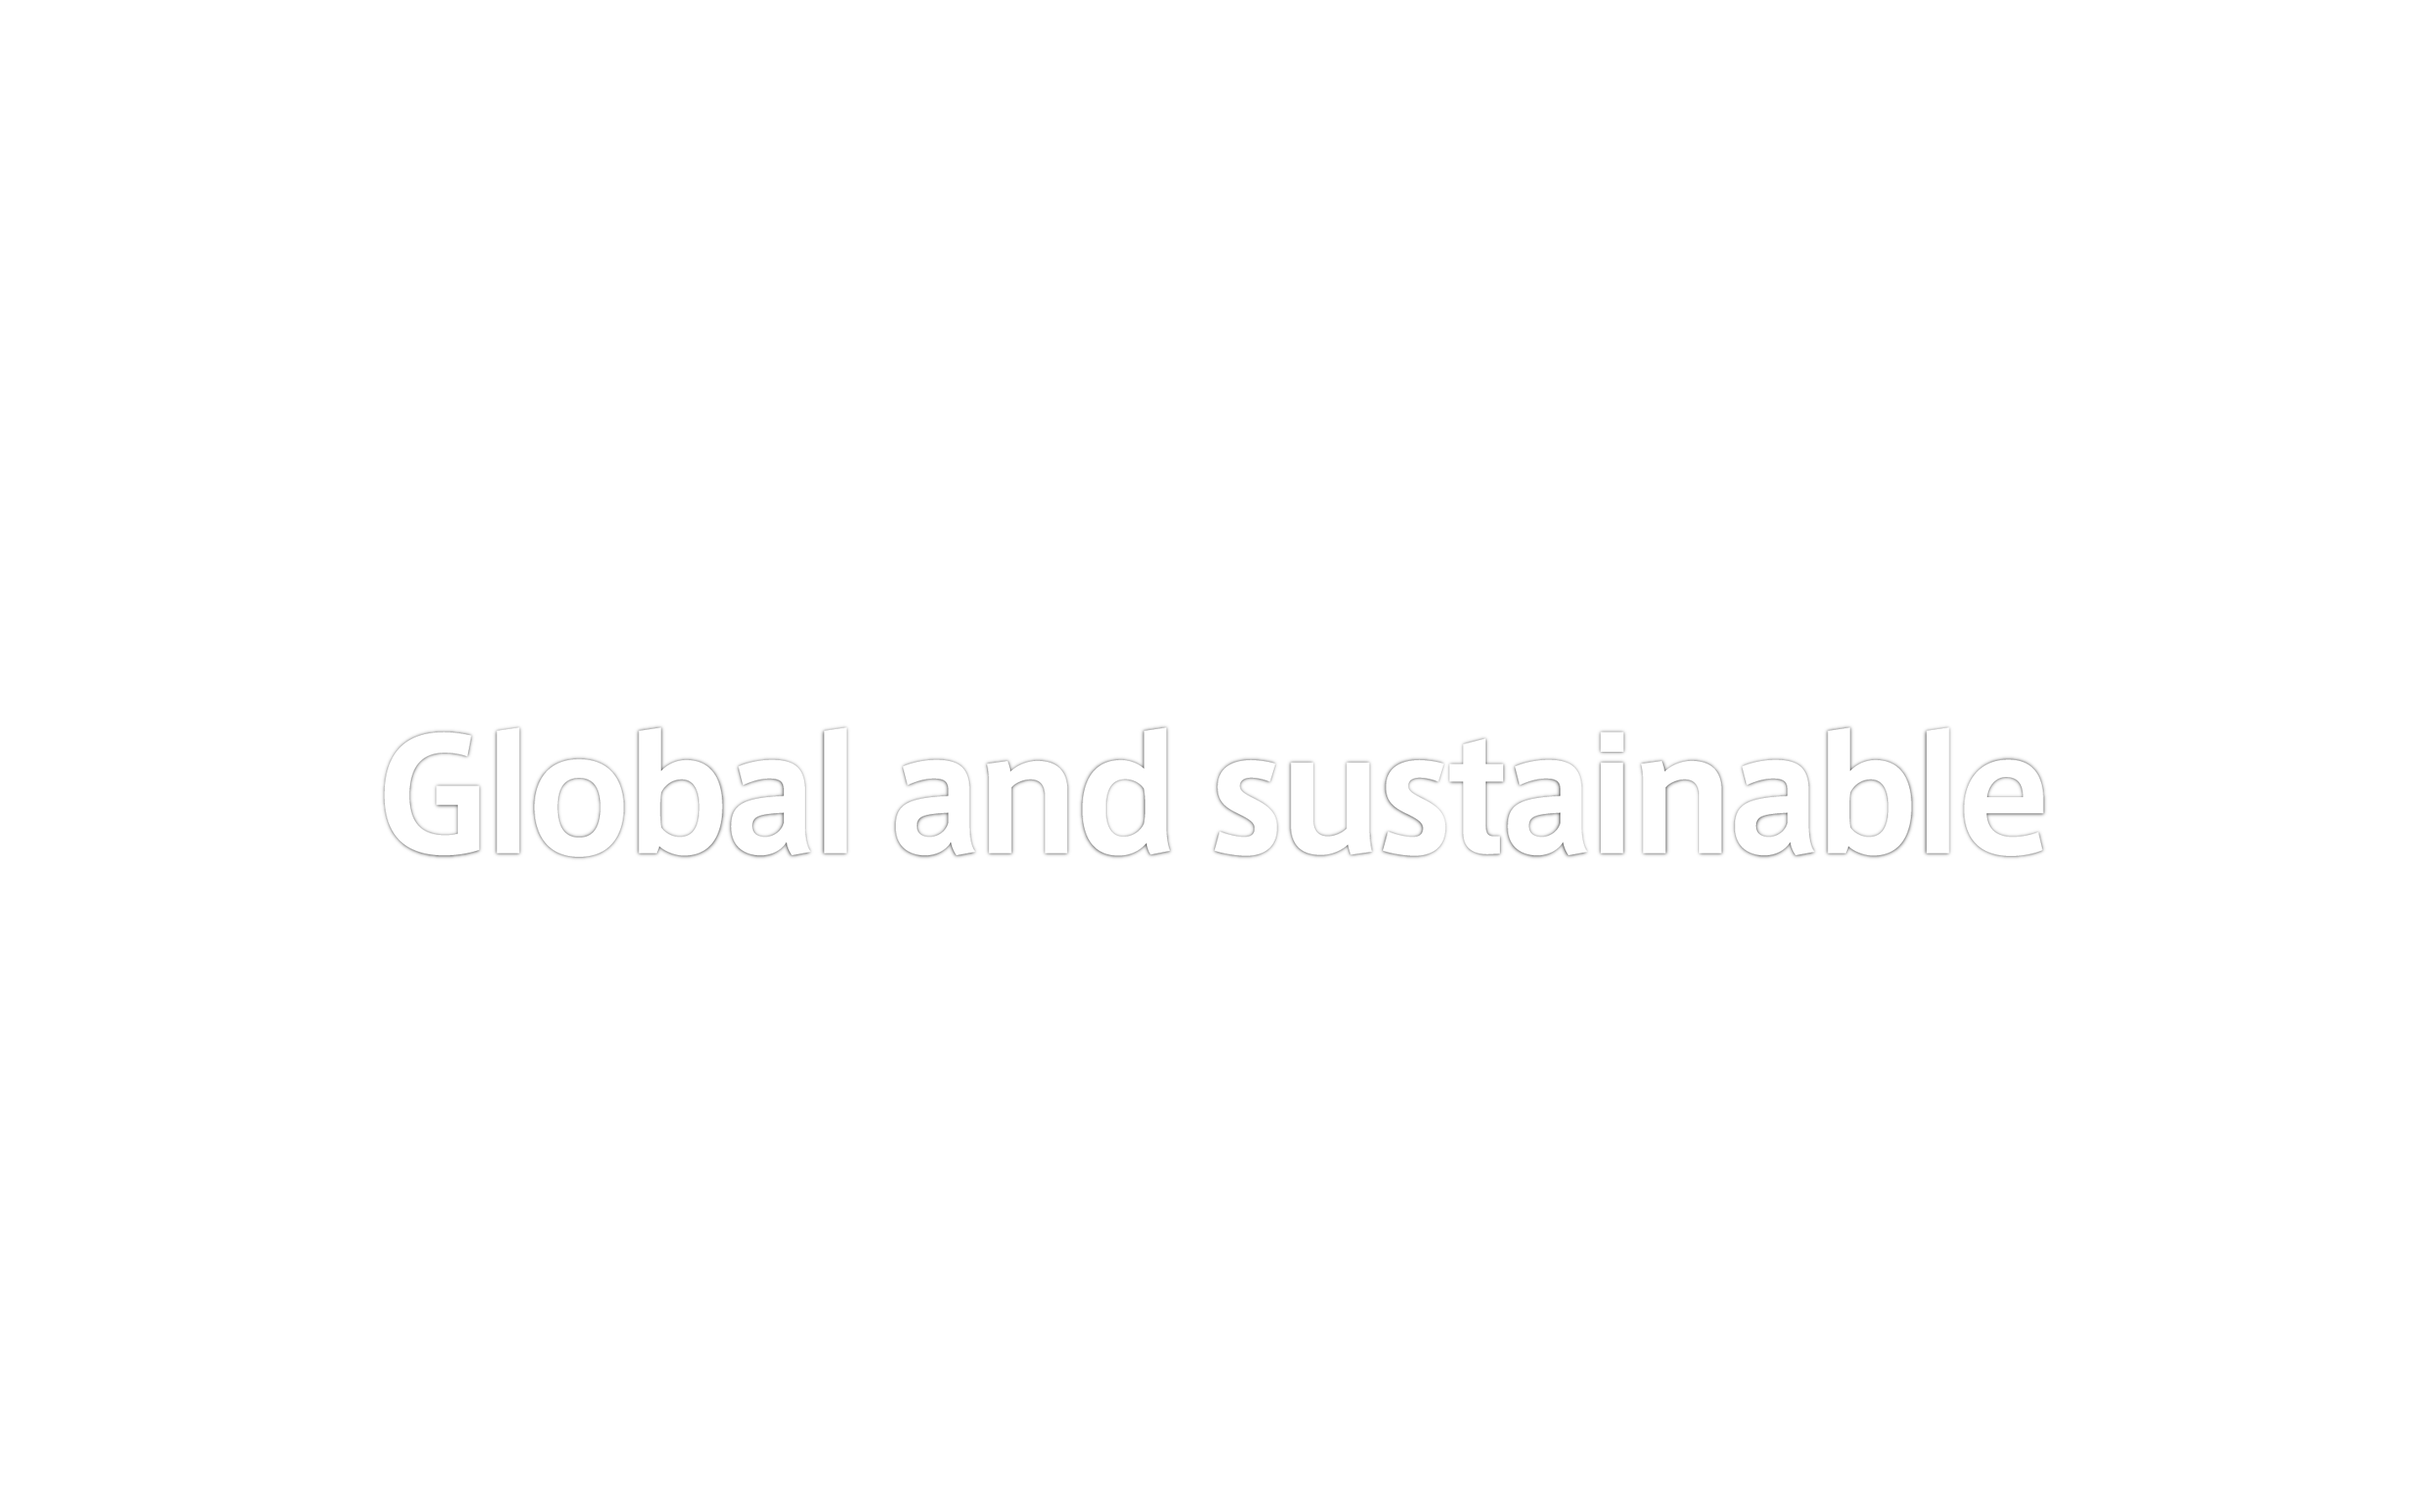 Global and sustainable